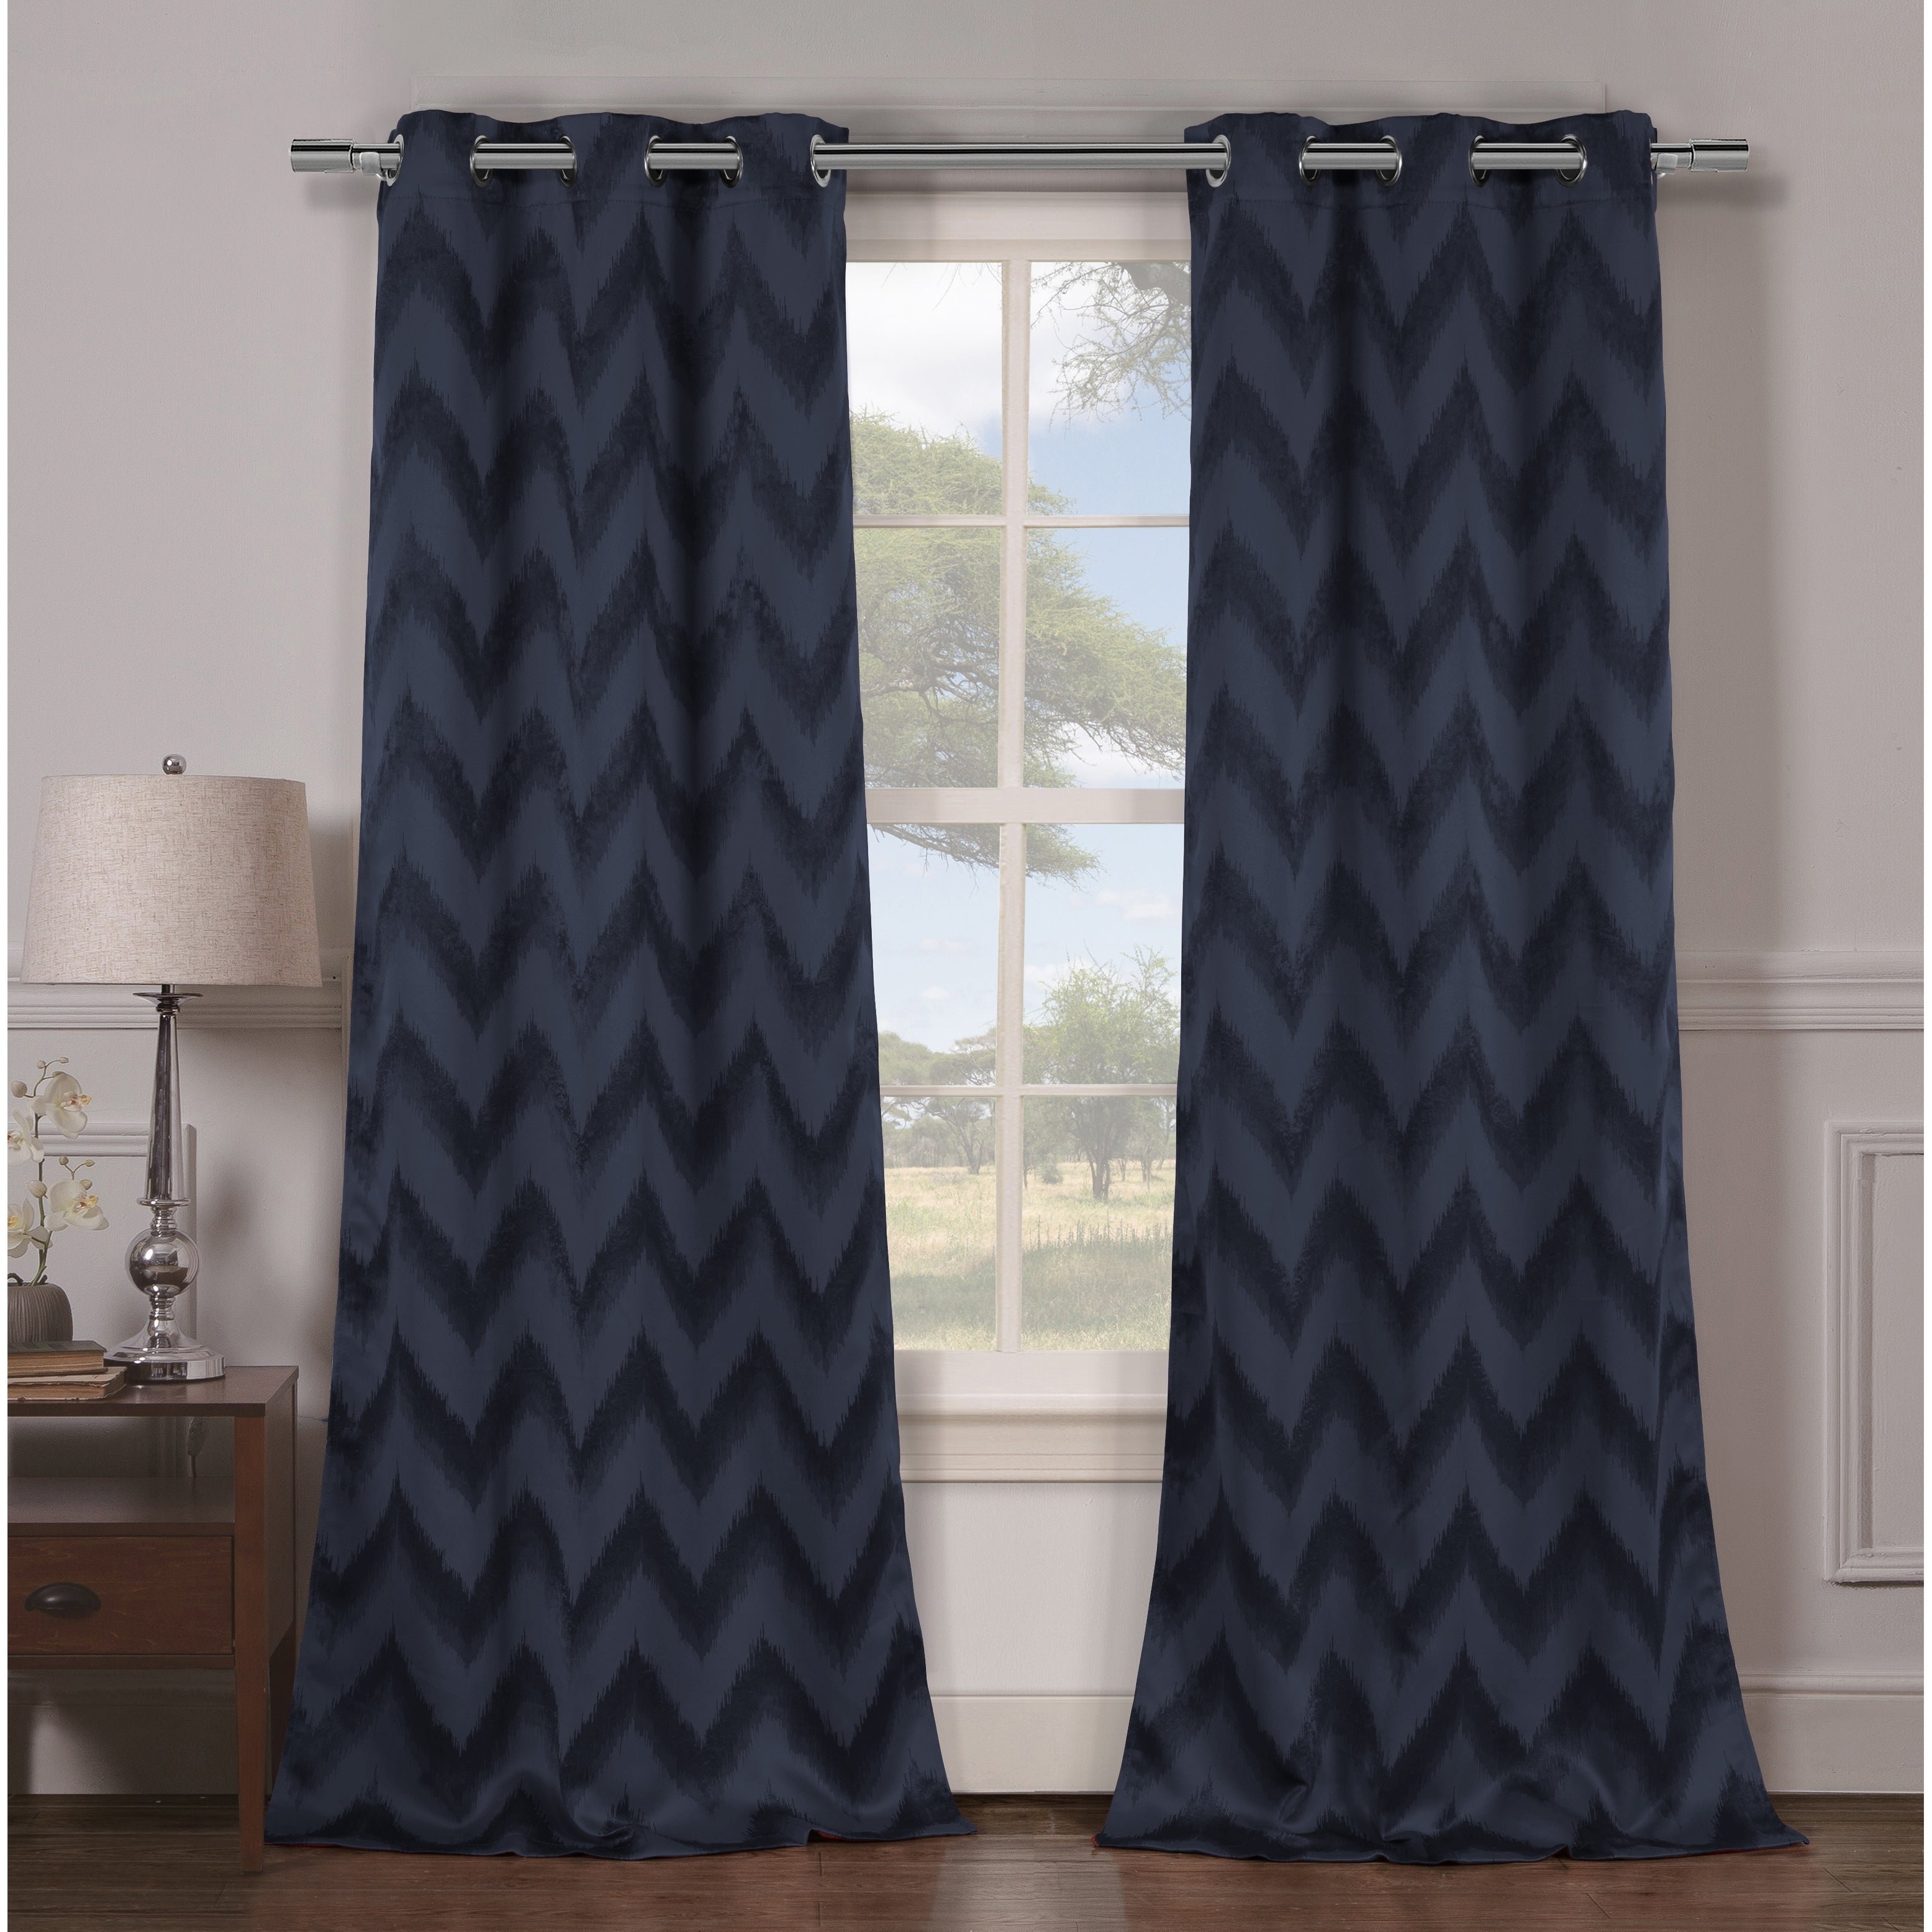 Detalles Acerca De Duck River Lysanna Grommet Top Thermal Insulated Blackout Curtain Panel Pair – Regarding Thermal Insulated Blackout Curtain Panel Pairs (View 8 of 30)